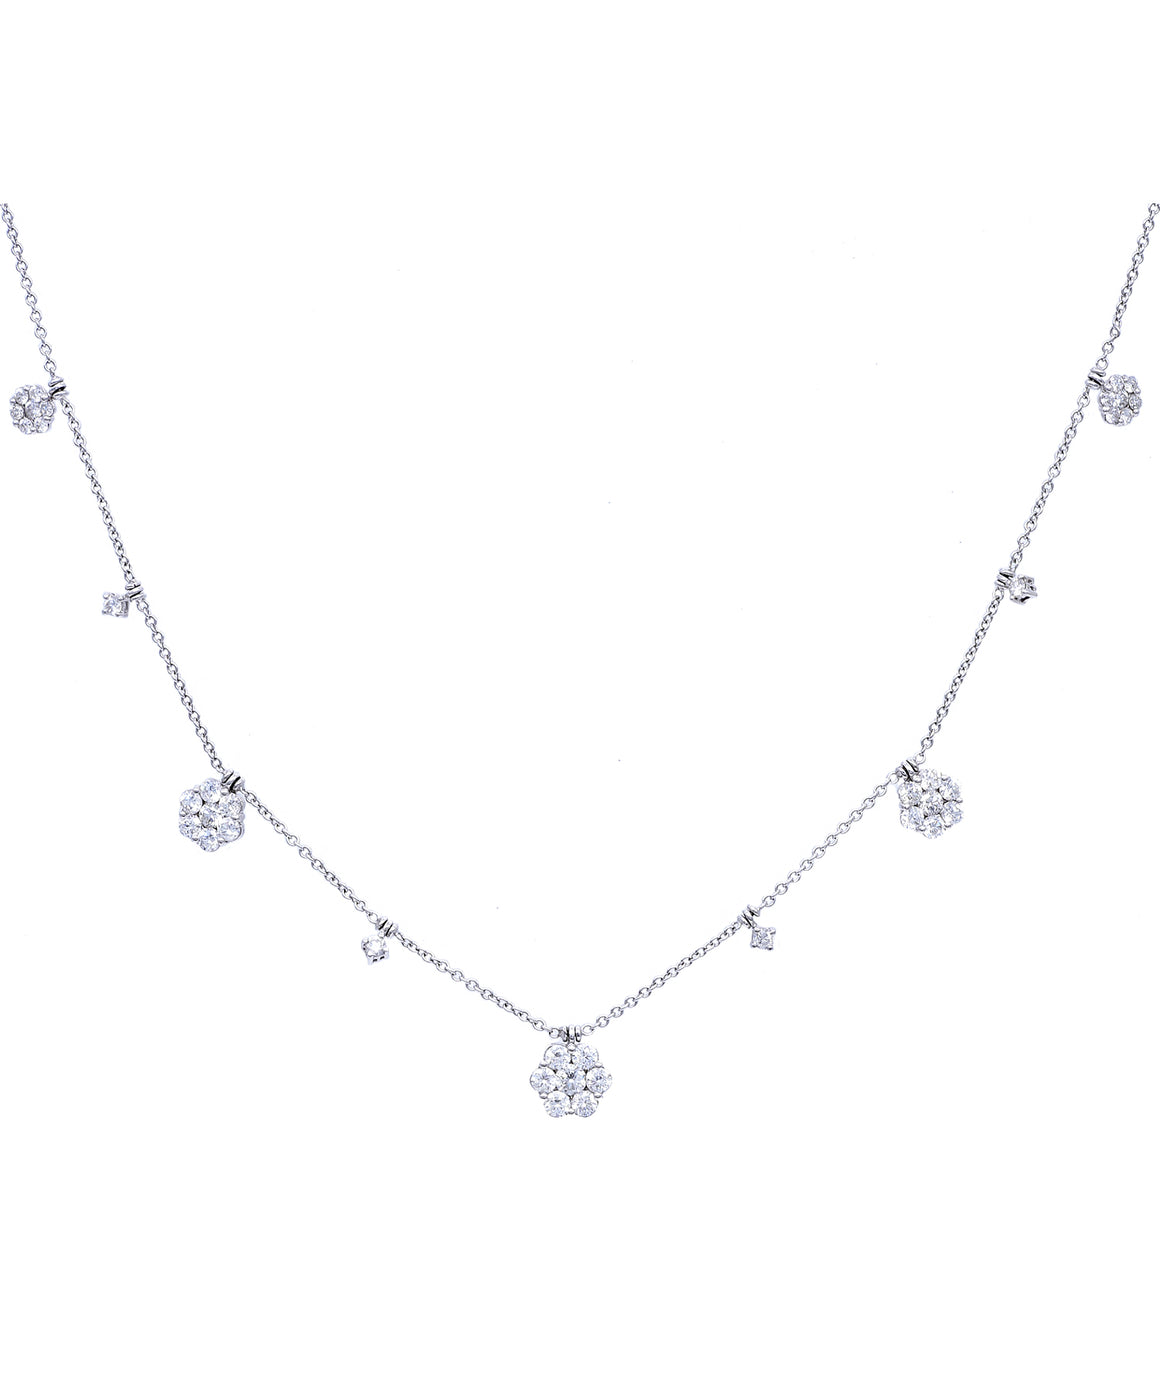 Diamond Flower Drop Necklace - Lesley Ann Jewels